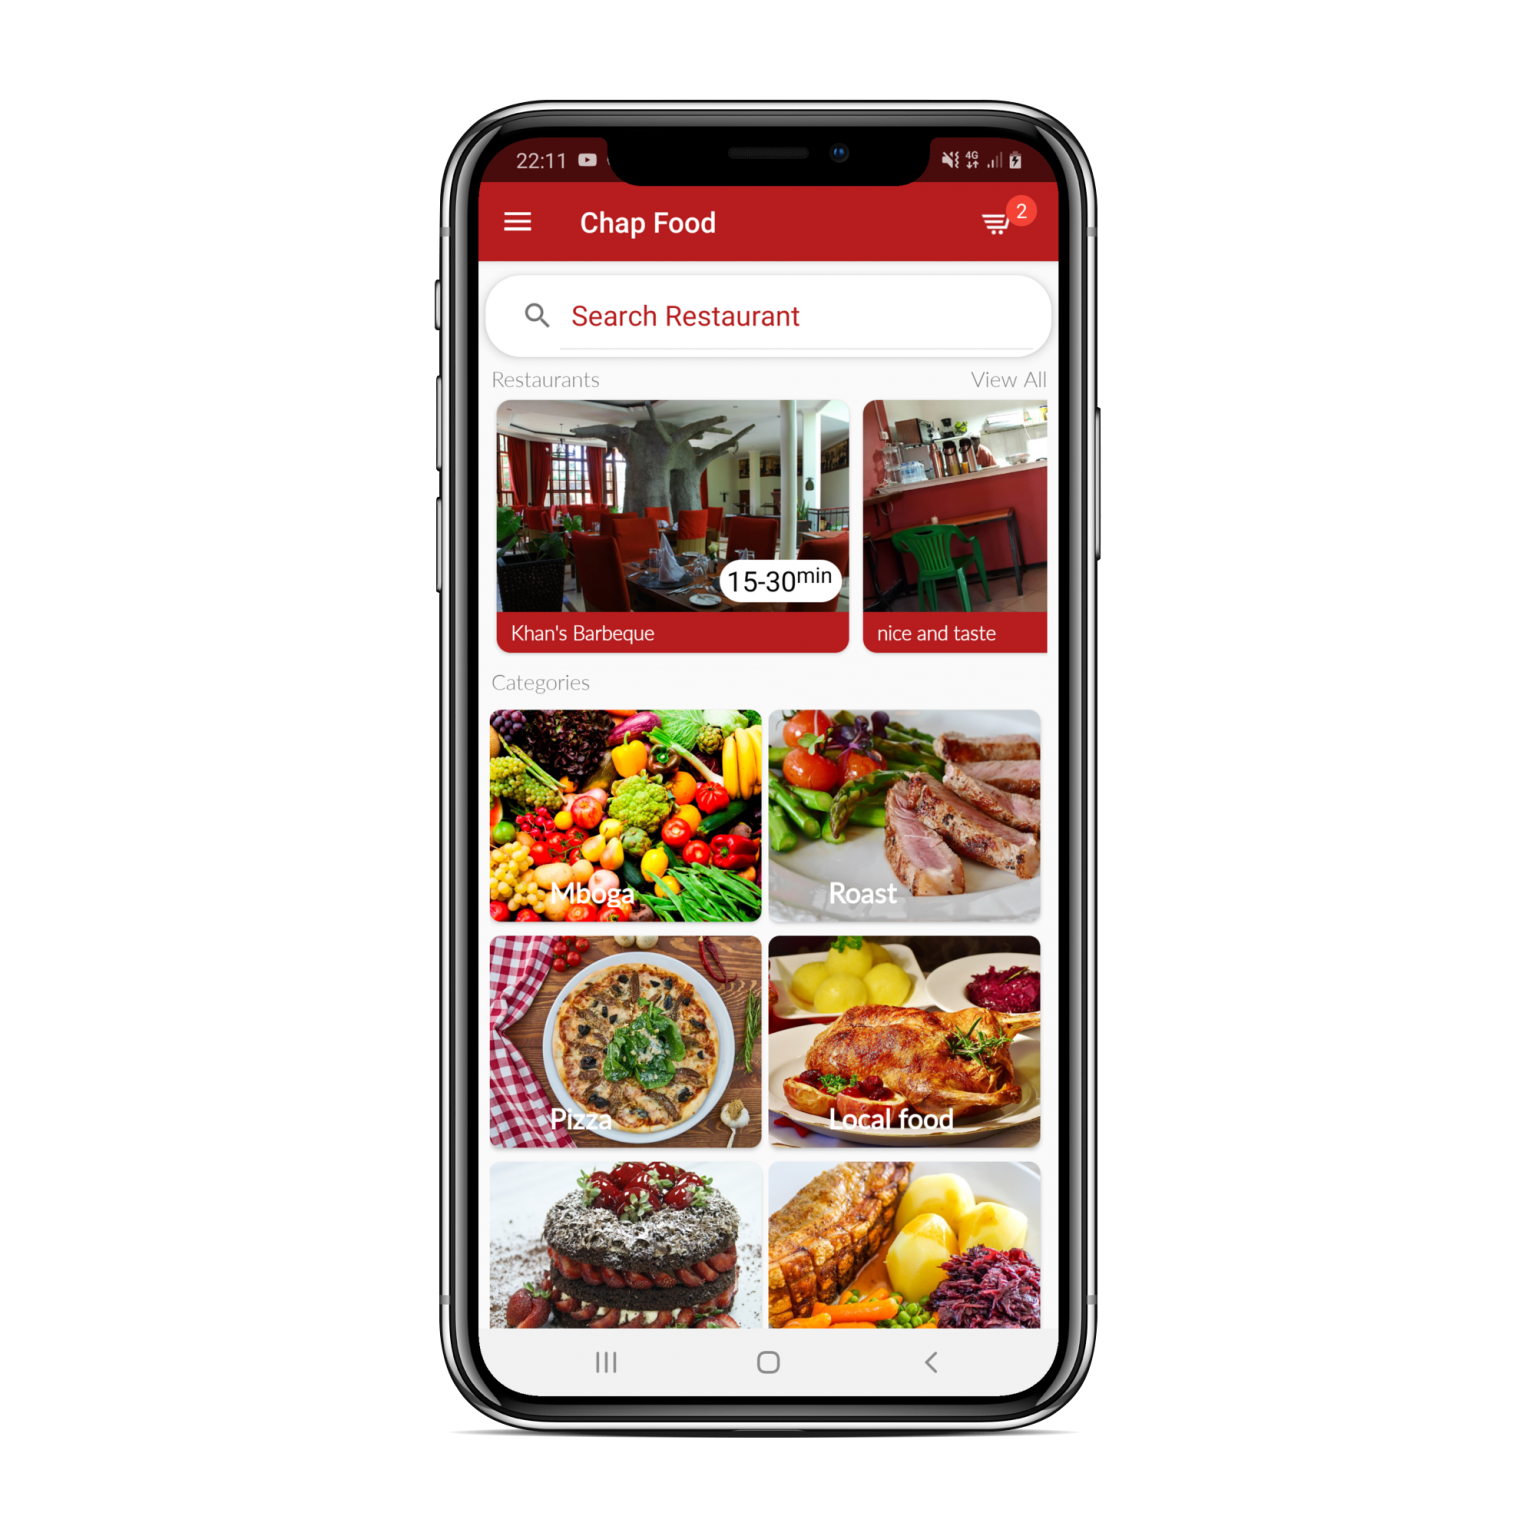 Chap food Delivery mobile app developed by Nougat technologies Tanzania